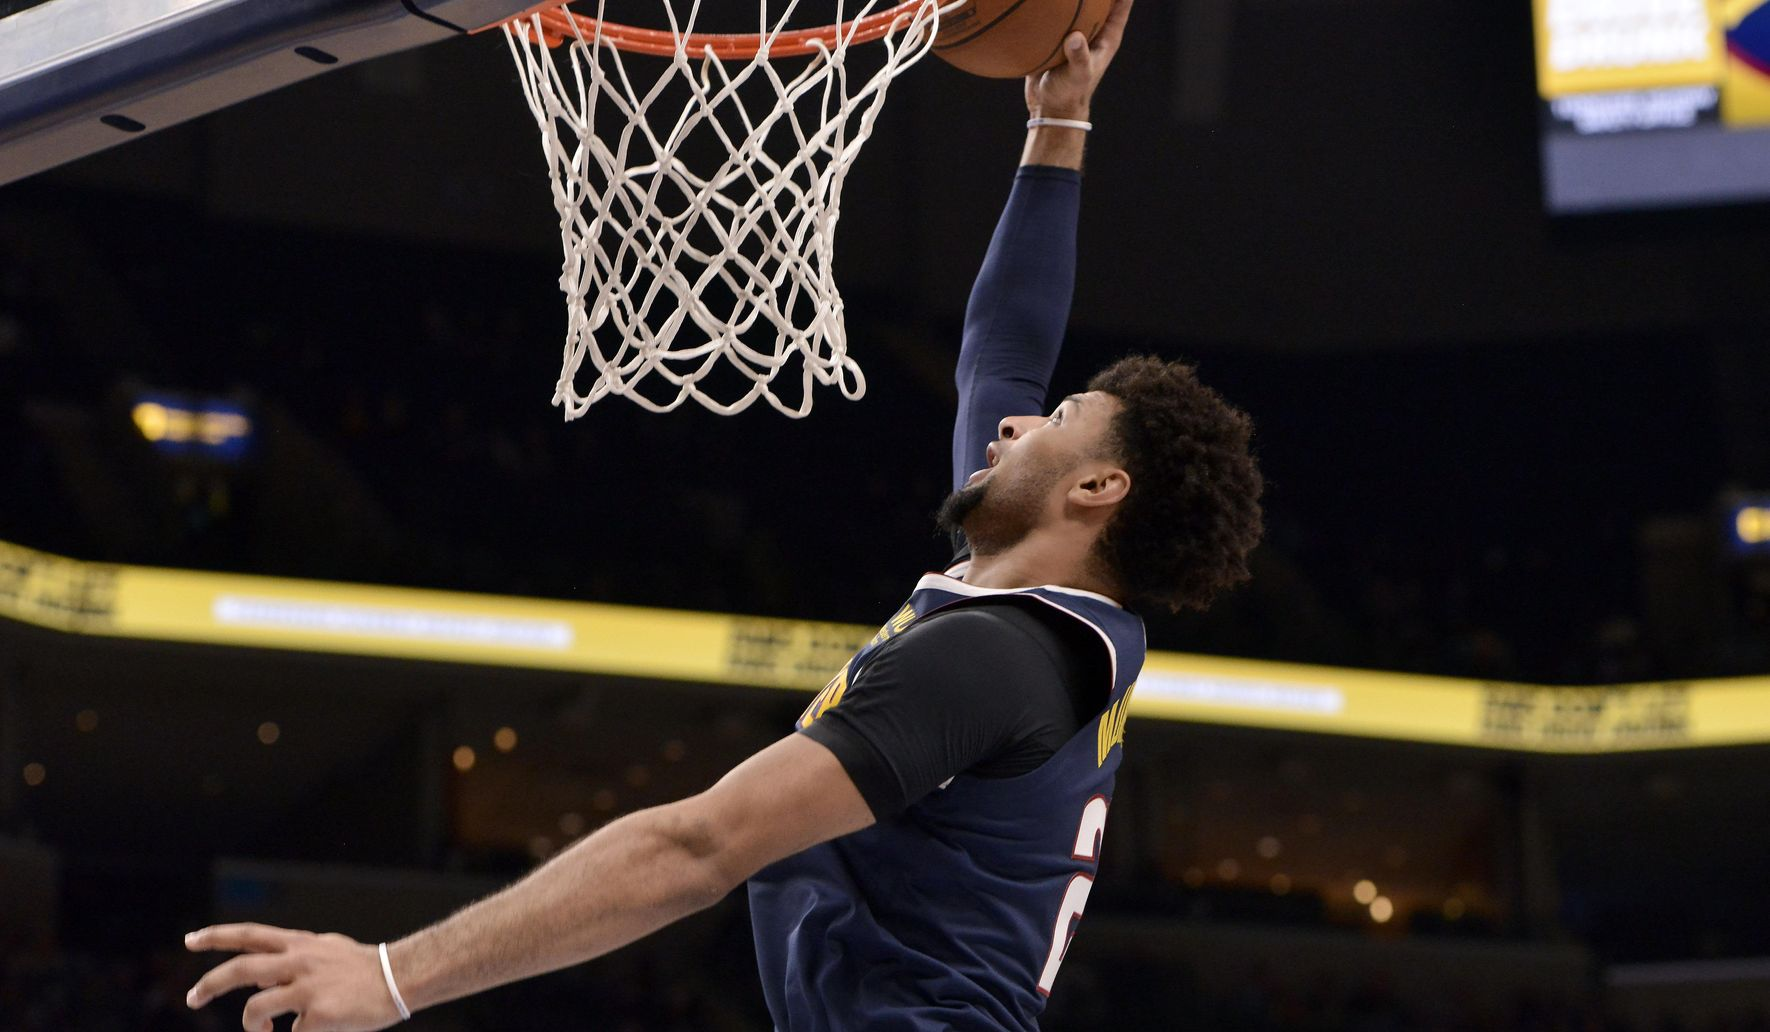 Nuggets_grizzlies_basketball_36685_c0-260-6168-3856_s1770x1032